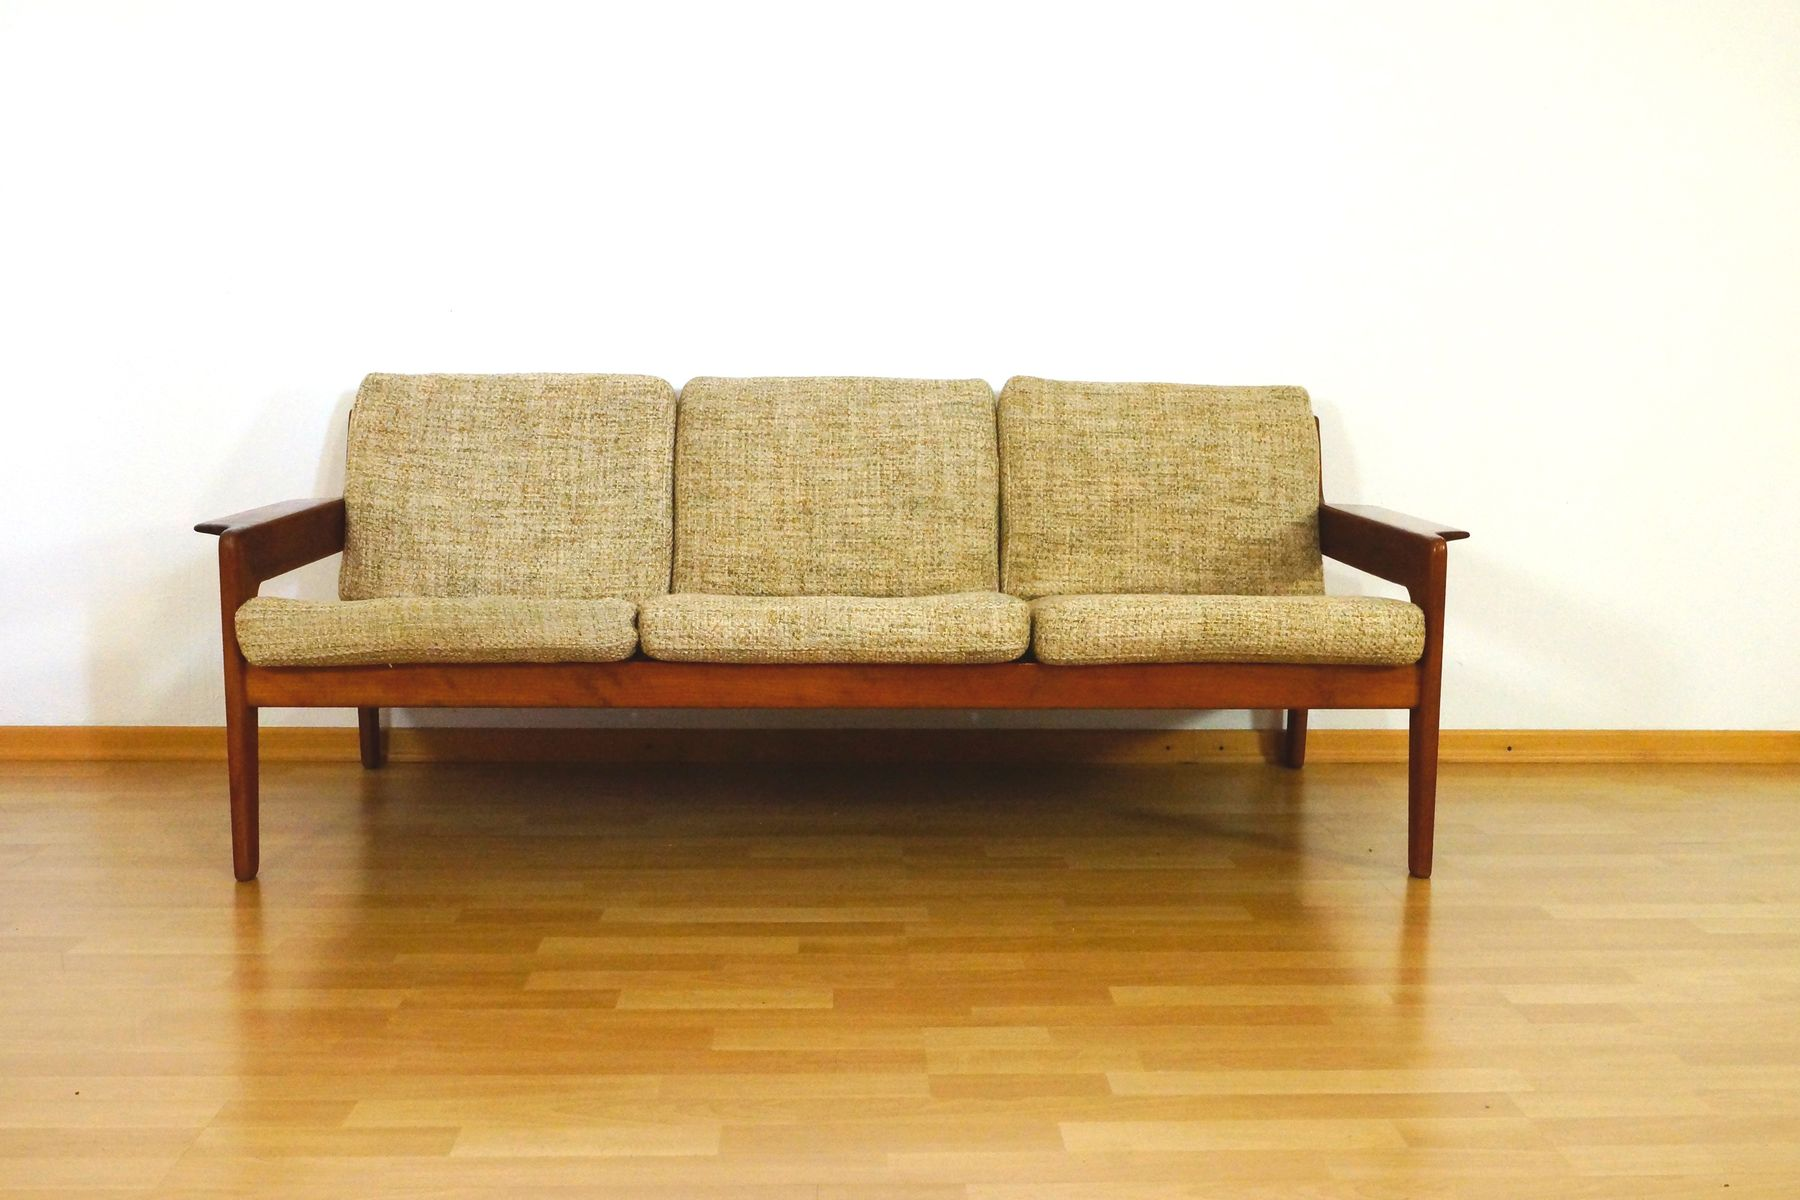 danish three seater teak sofa by arne wahl iversen for komfort 1960s for sale at pamono. Black Bedroom Furniture Sets. Home Design Ideas